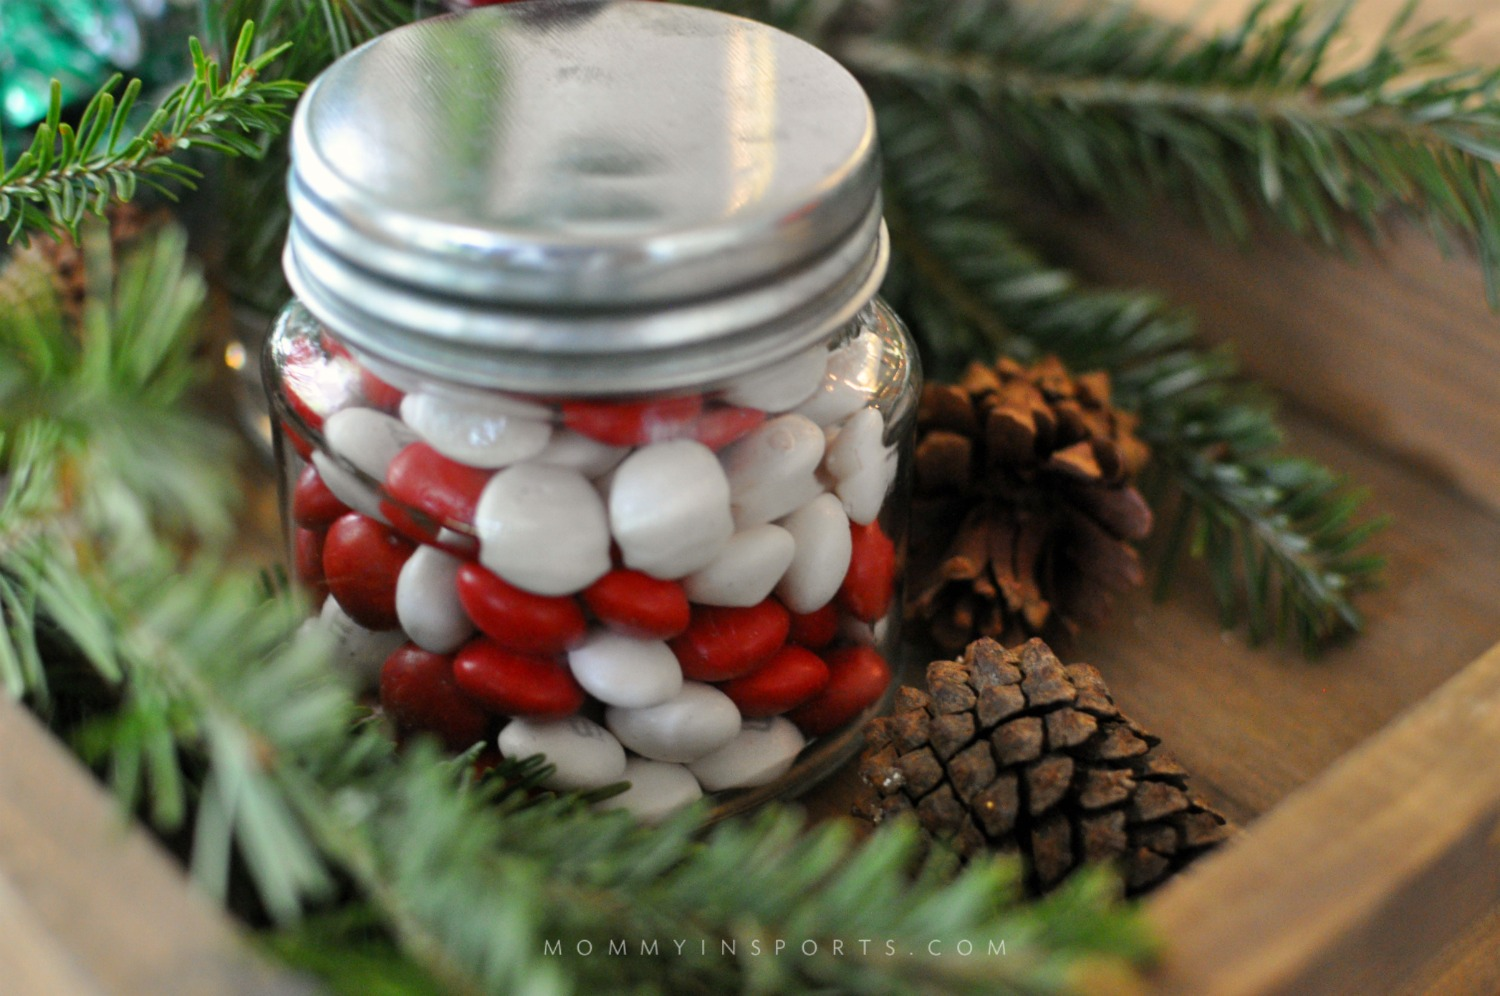 A wooden box or wine crate is perfect for an ottoman tray or centerpiece! Fill with flowers, cranberries, Christmas tree clippings and jars of candy to create a simple DIY holiday centerpiece!